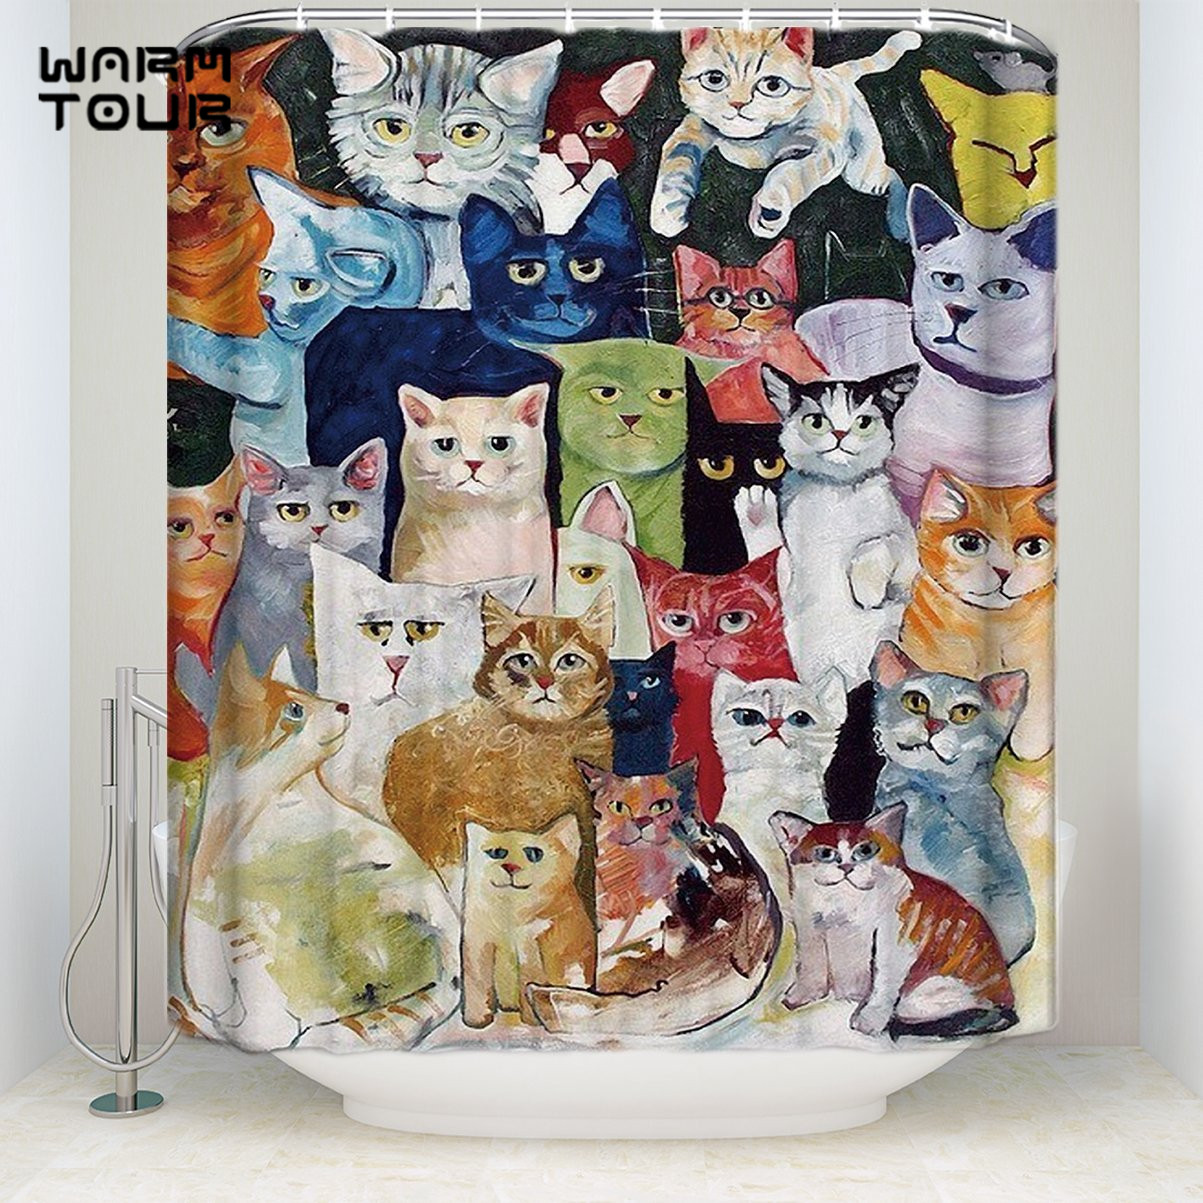 Extra Long Fabric Bath Shower Curtains Funny Cats Flurry Mildew Resistant Bathroom Decor Sets With Hooks